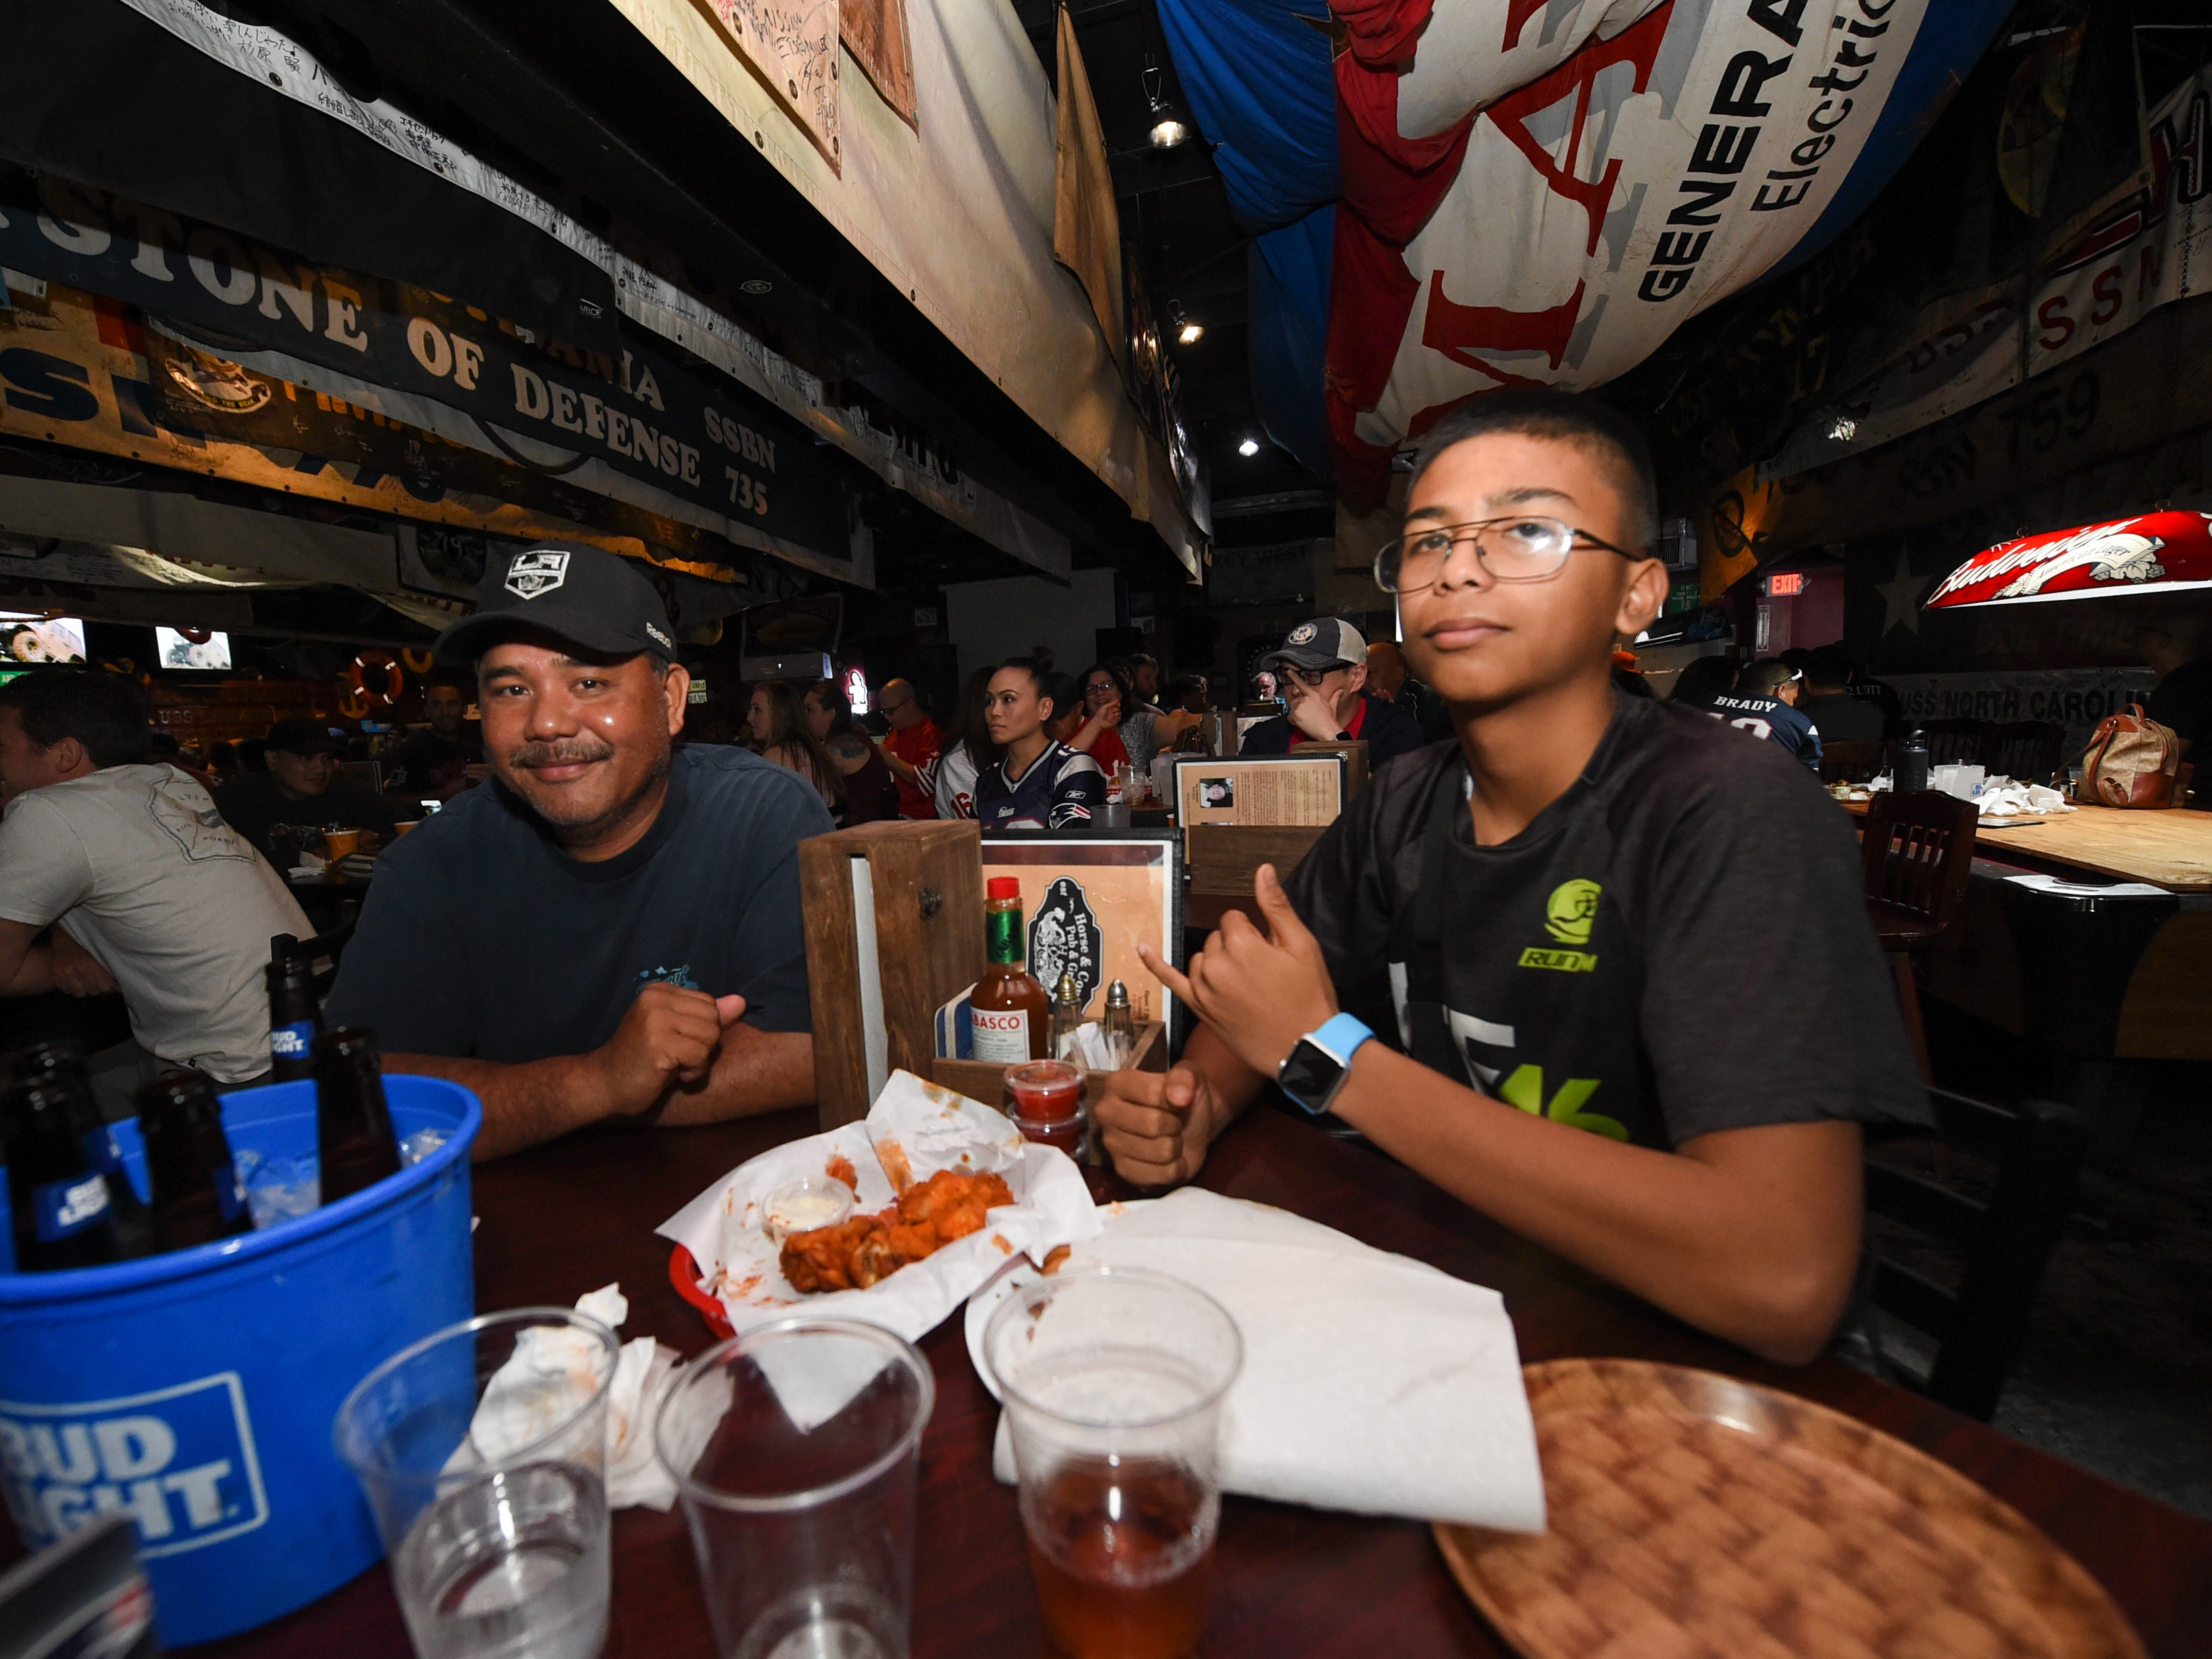 G'vonni Perez, right, watches Superbowl 53 with his uncle Rudy Chargualaf during a party at Horse and Cow in Tamuning, Feb. 4, 2019.